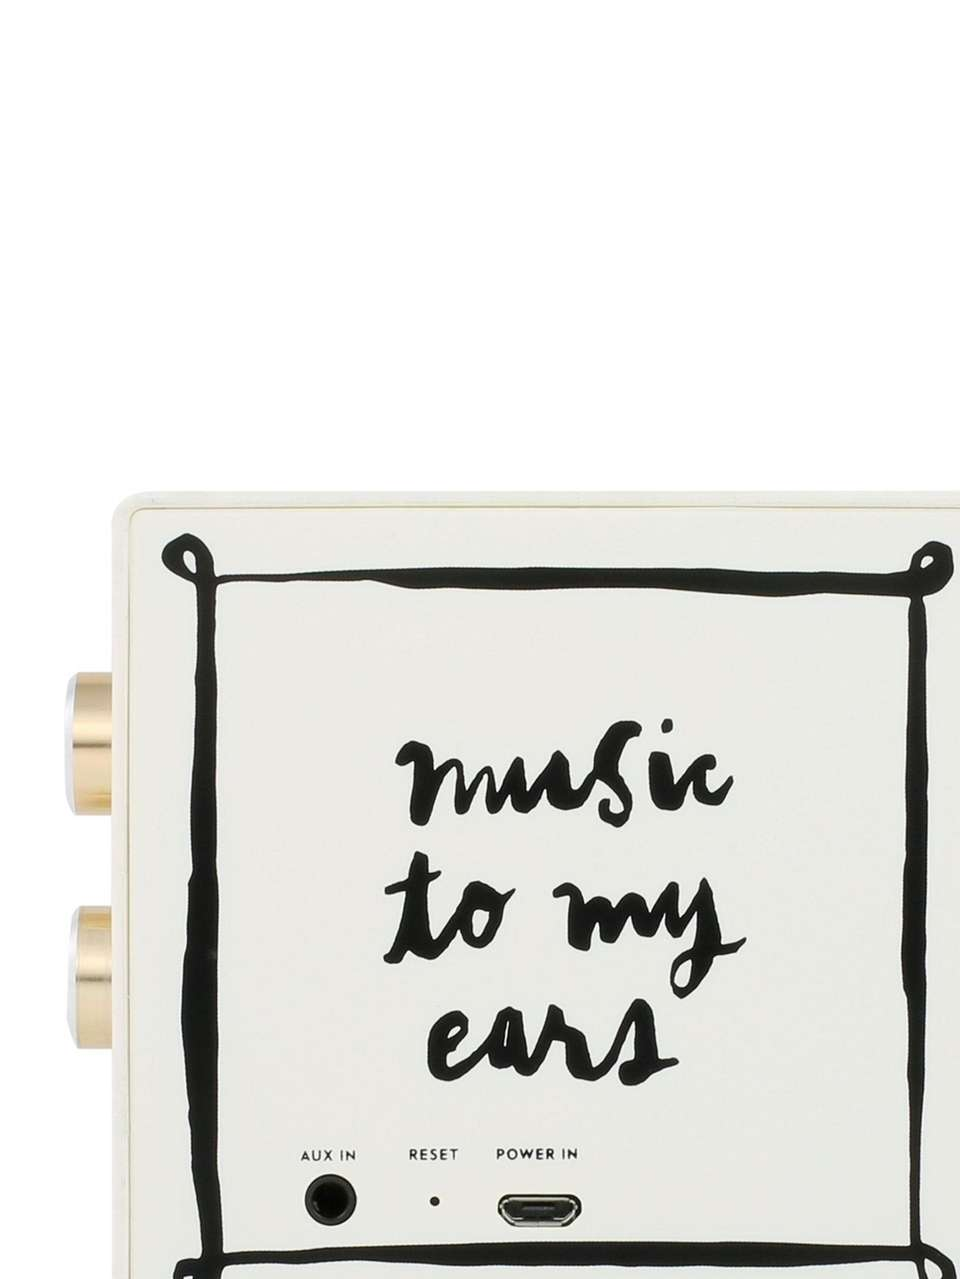 Take your tunes wherever you go with this